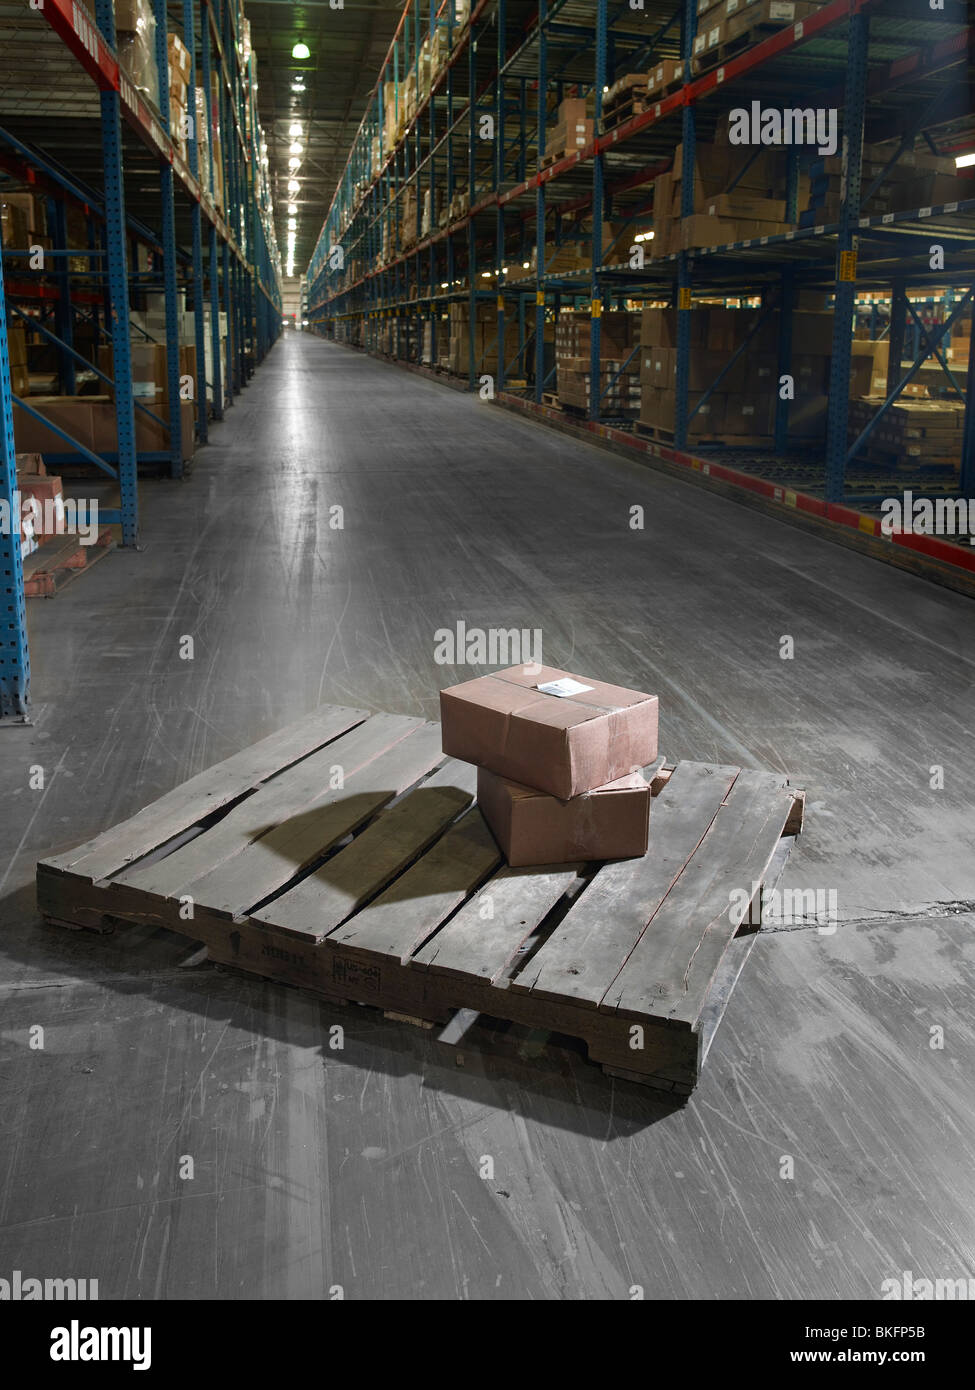 Boxes On Pallet In Large Warehouse, Philadelphia, USA - Stock Image